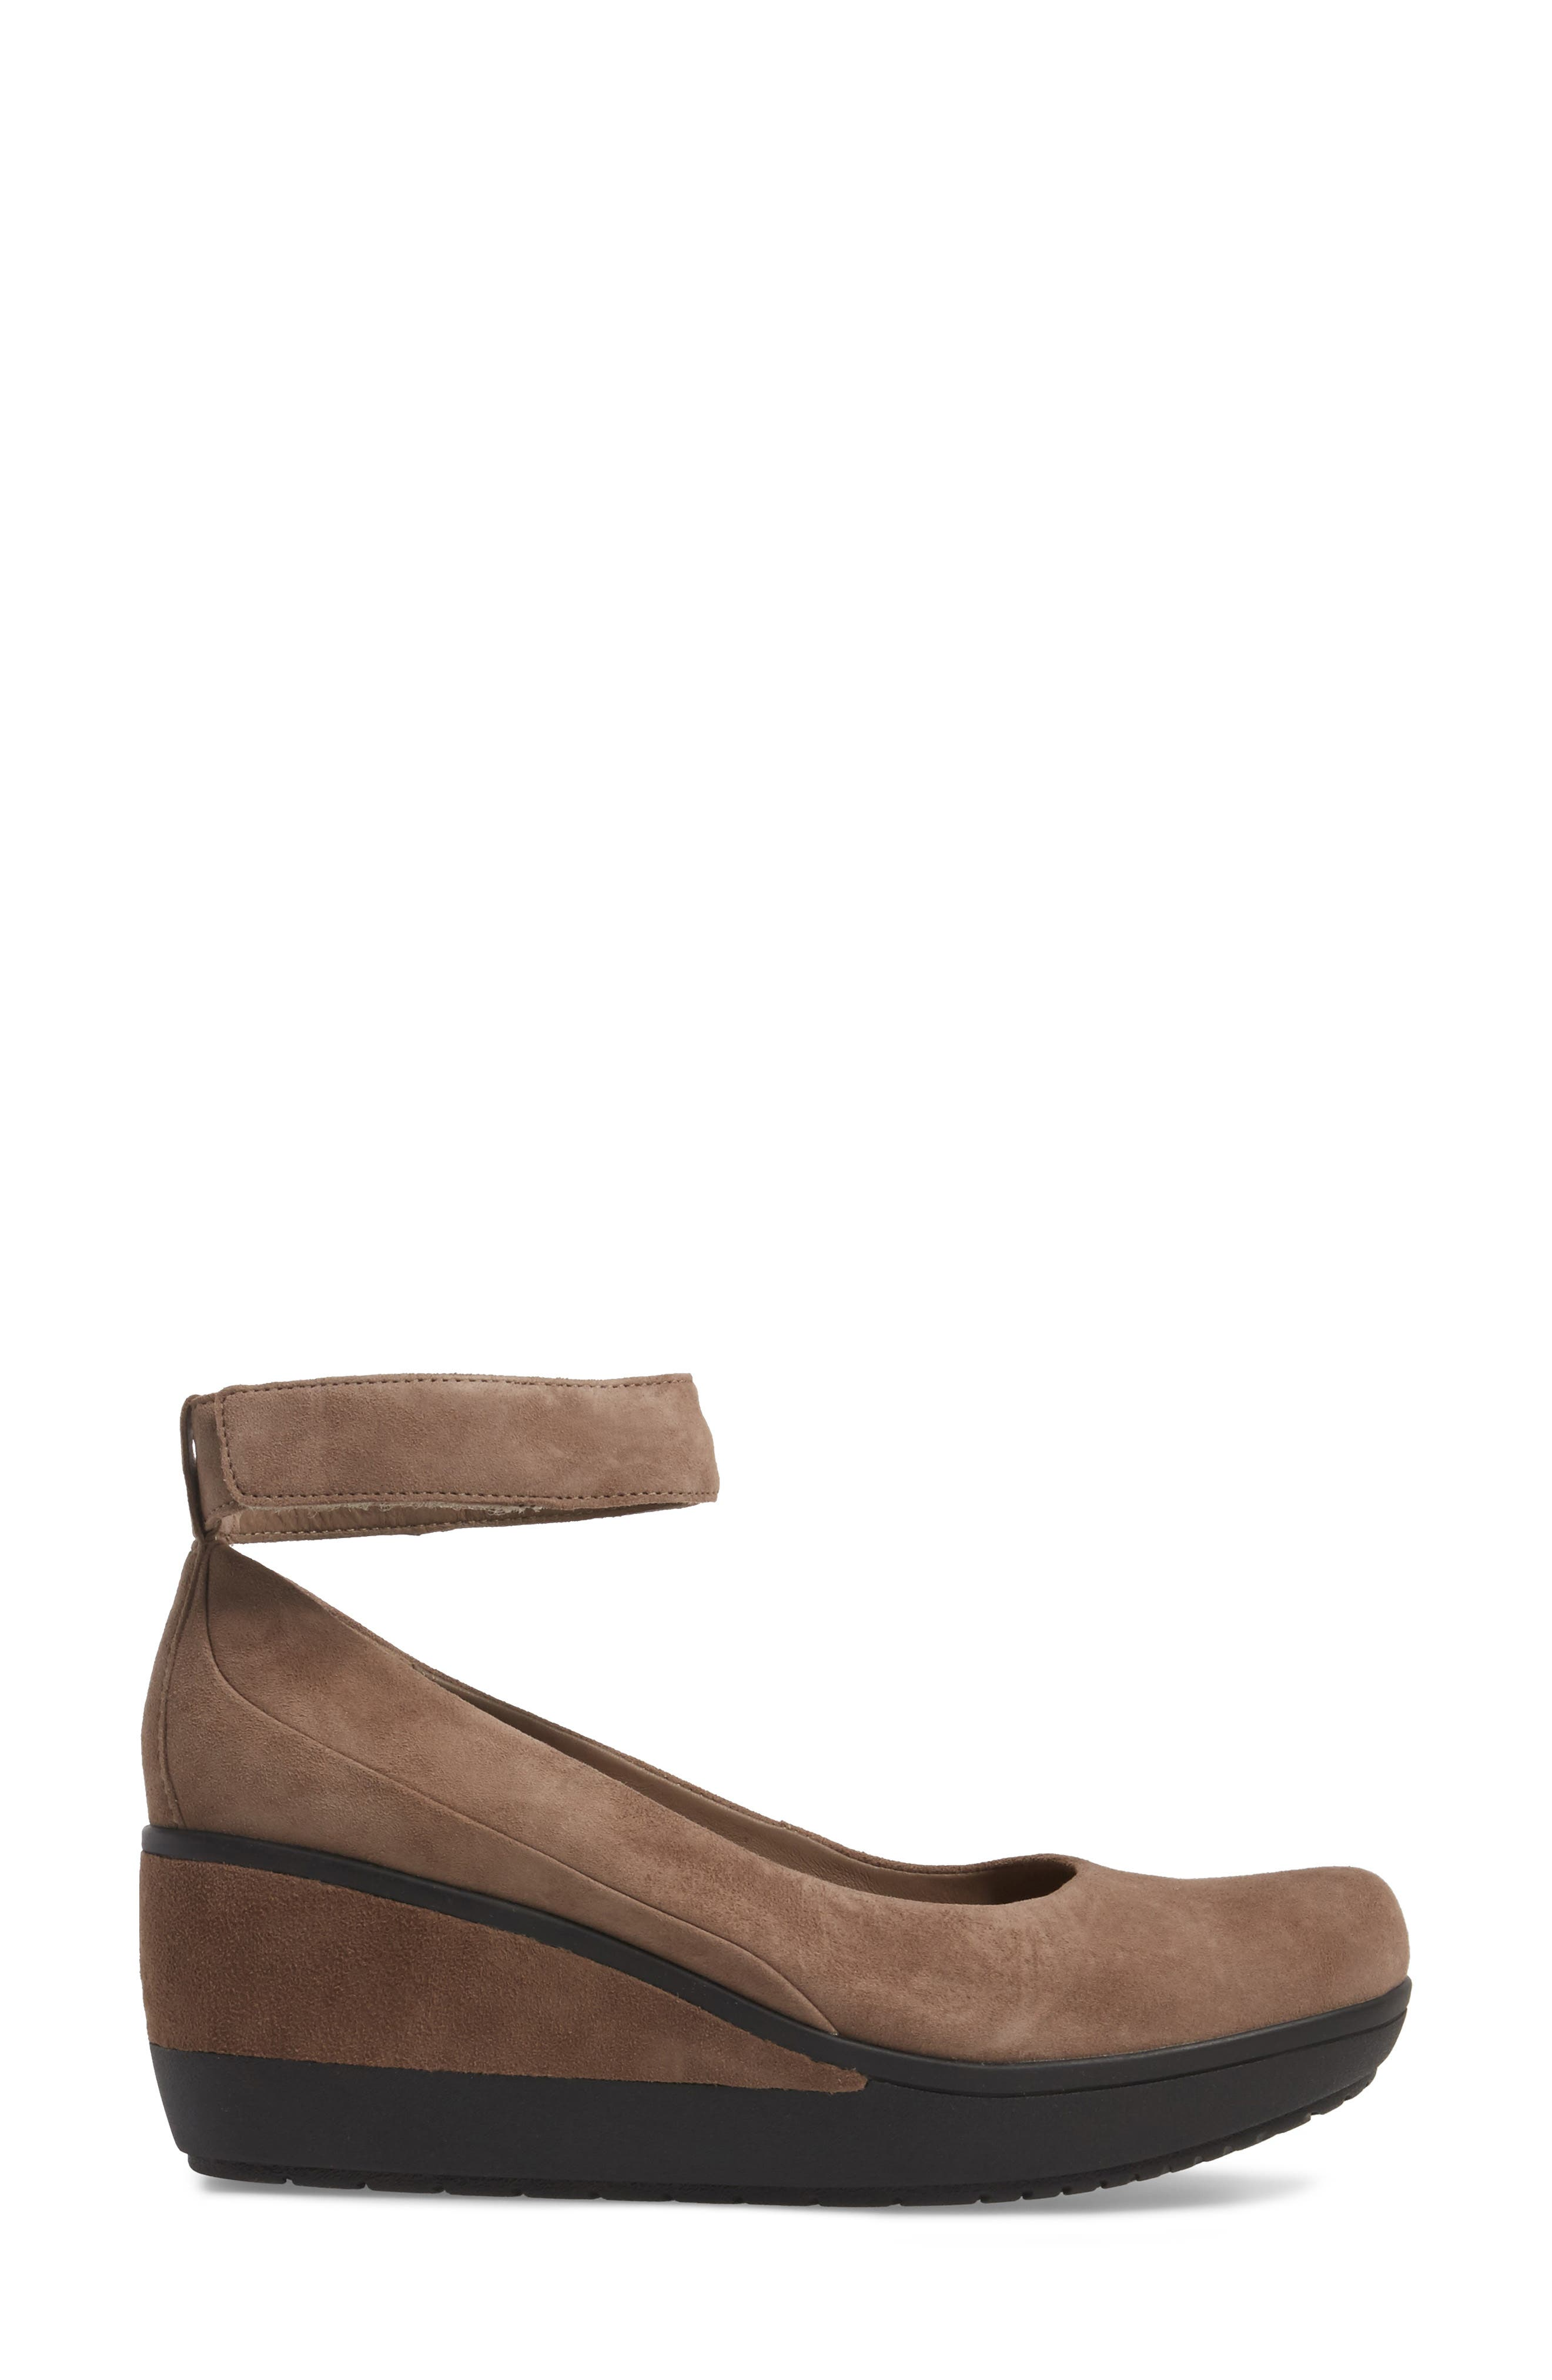 Wynnmere Fox Ankle Strap Pump,                             Alternate thumbnail 3, color,                             Pebble Suede